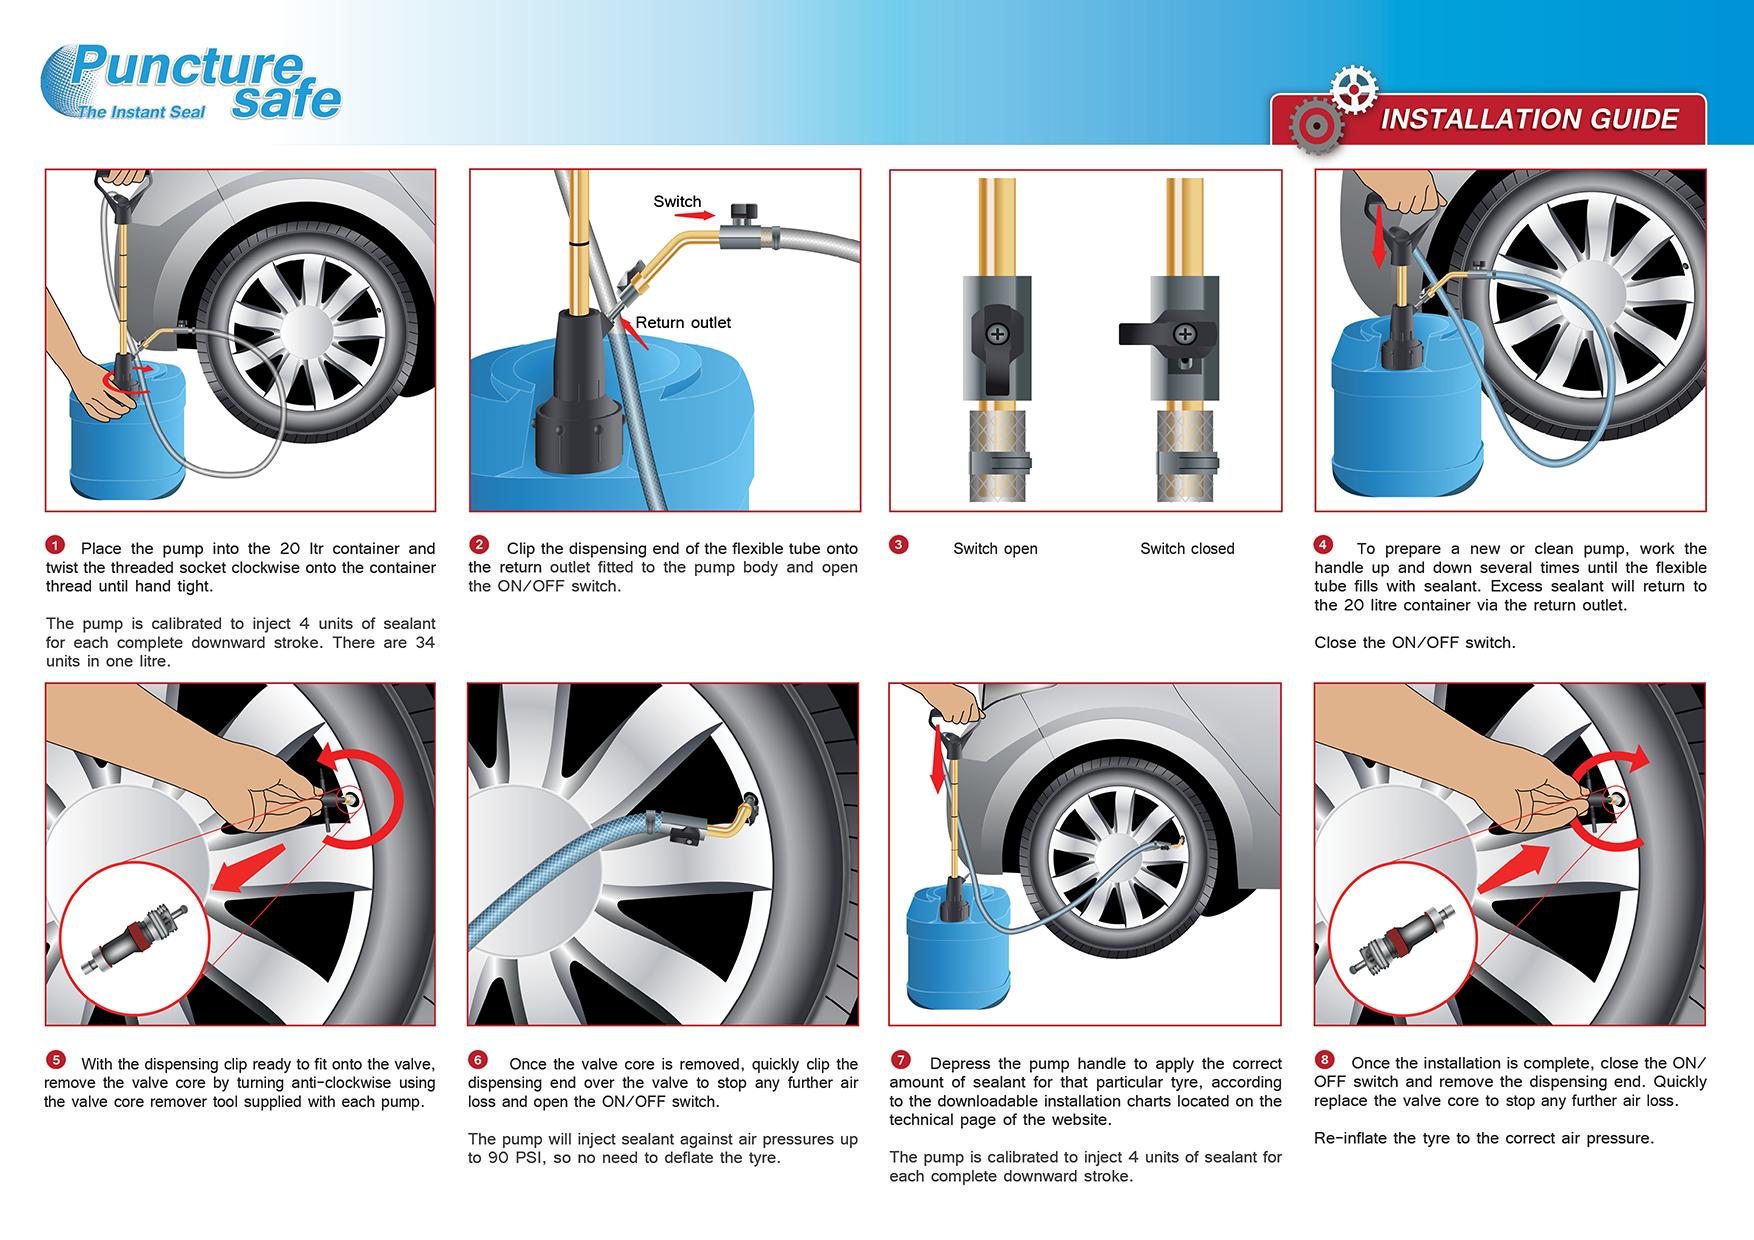 Puncturesafe Total Tyre Protection | Puncture Prevention & Tyre Life